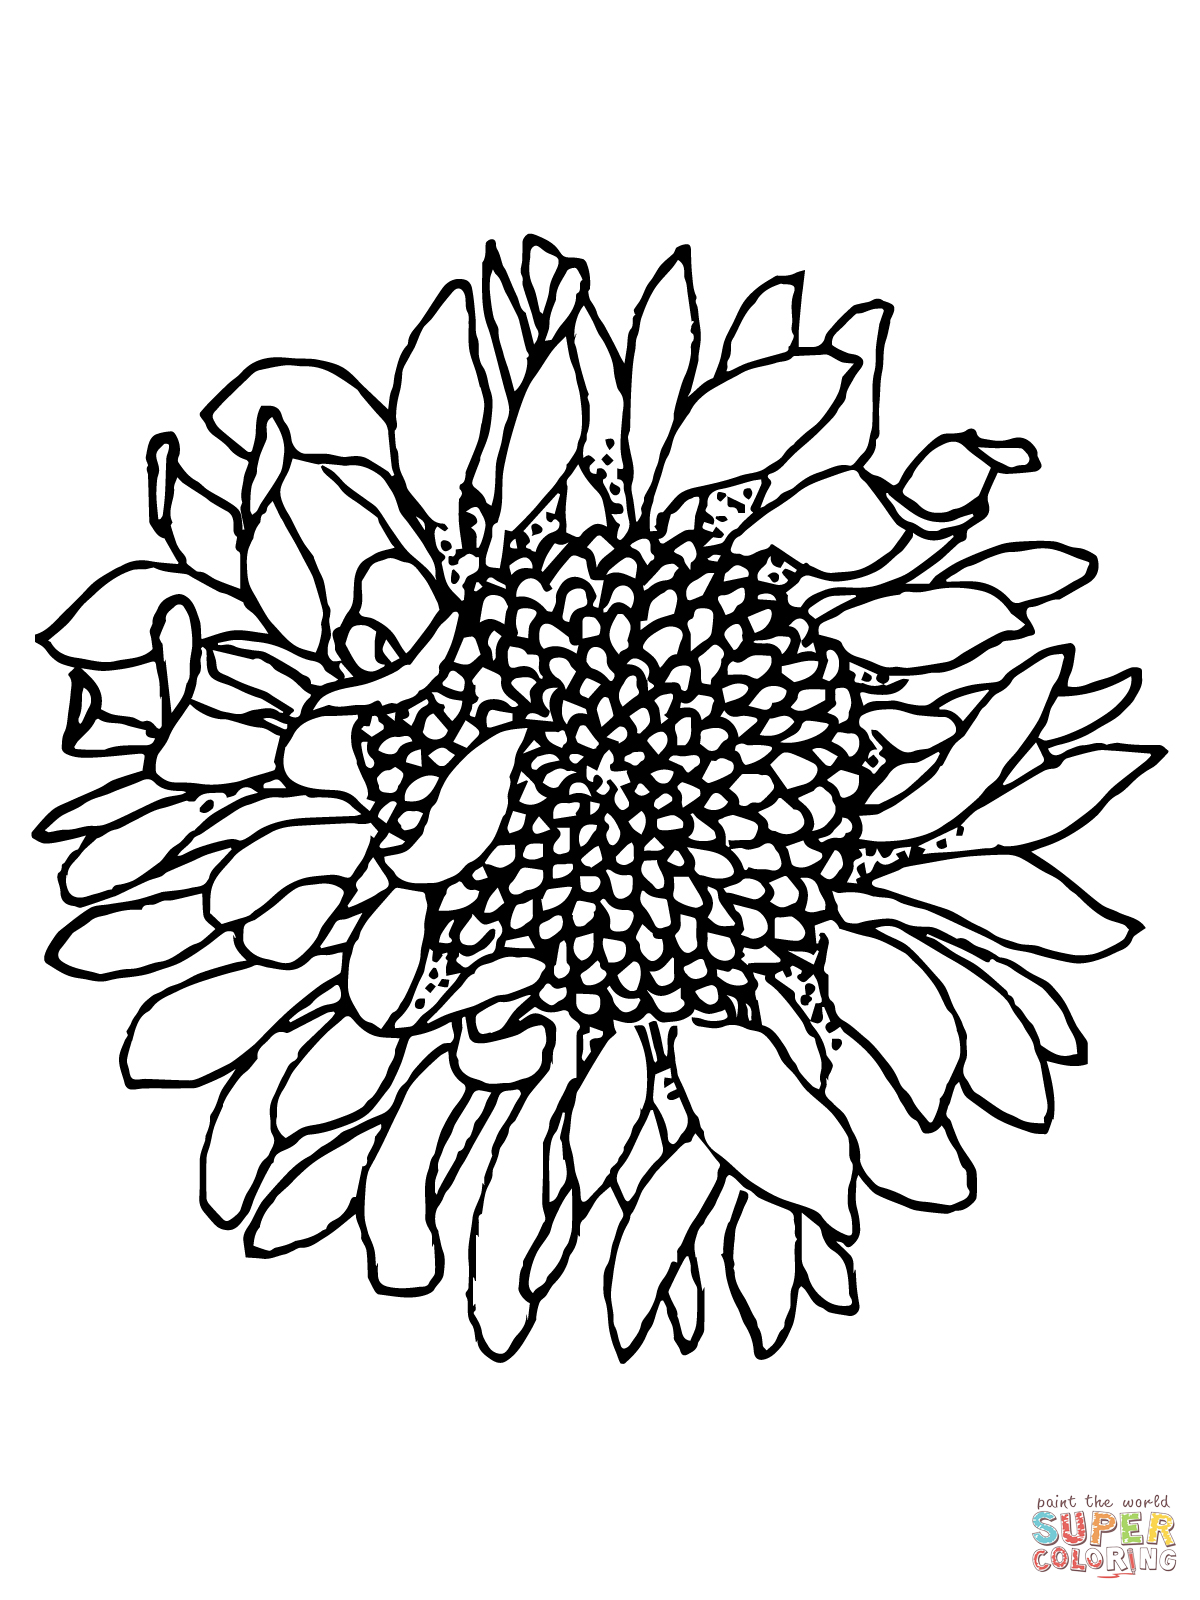 sunflower coloring page happy sunflower coloring page download print online sunflower page coloring